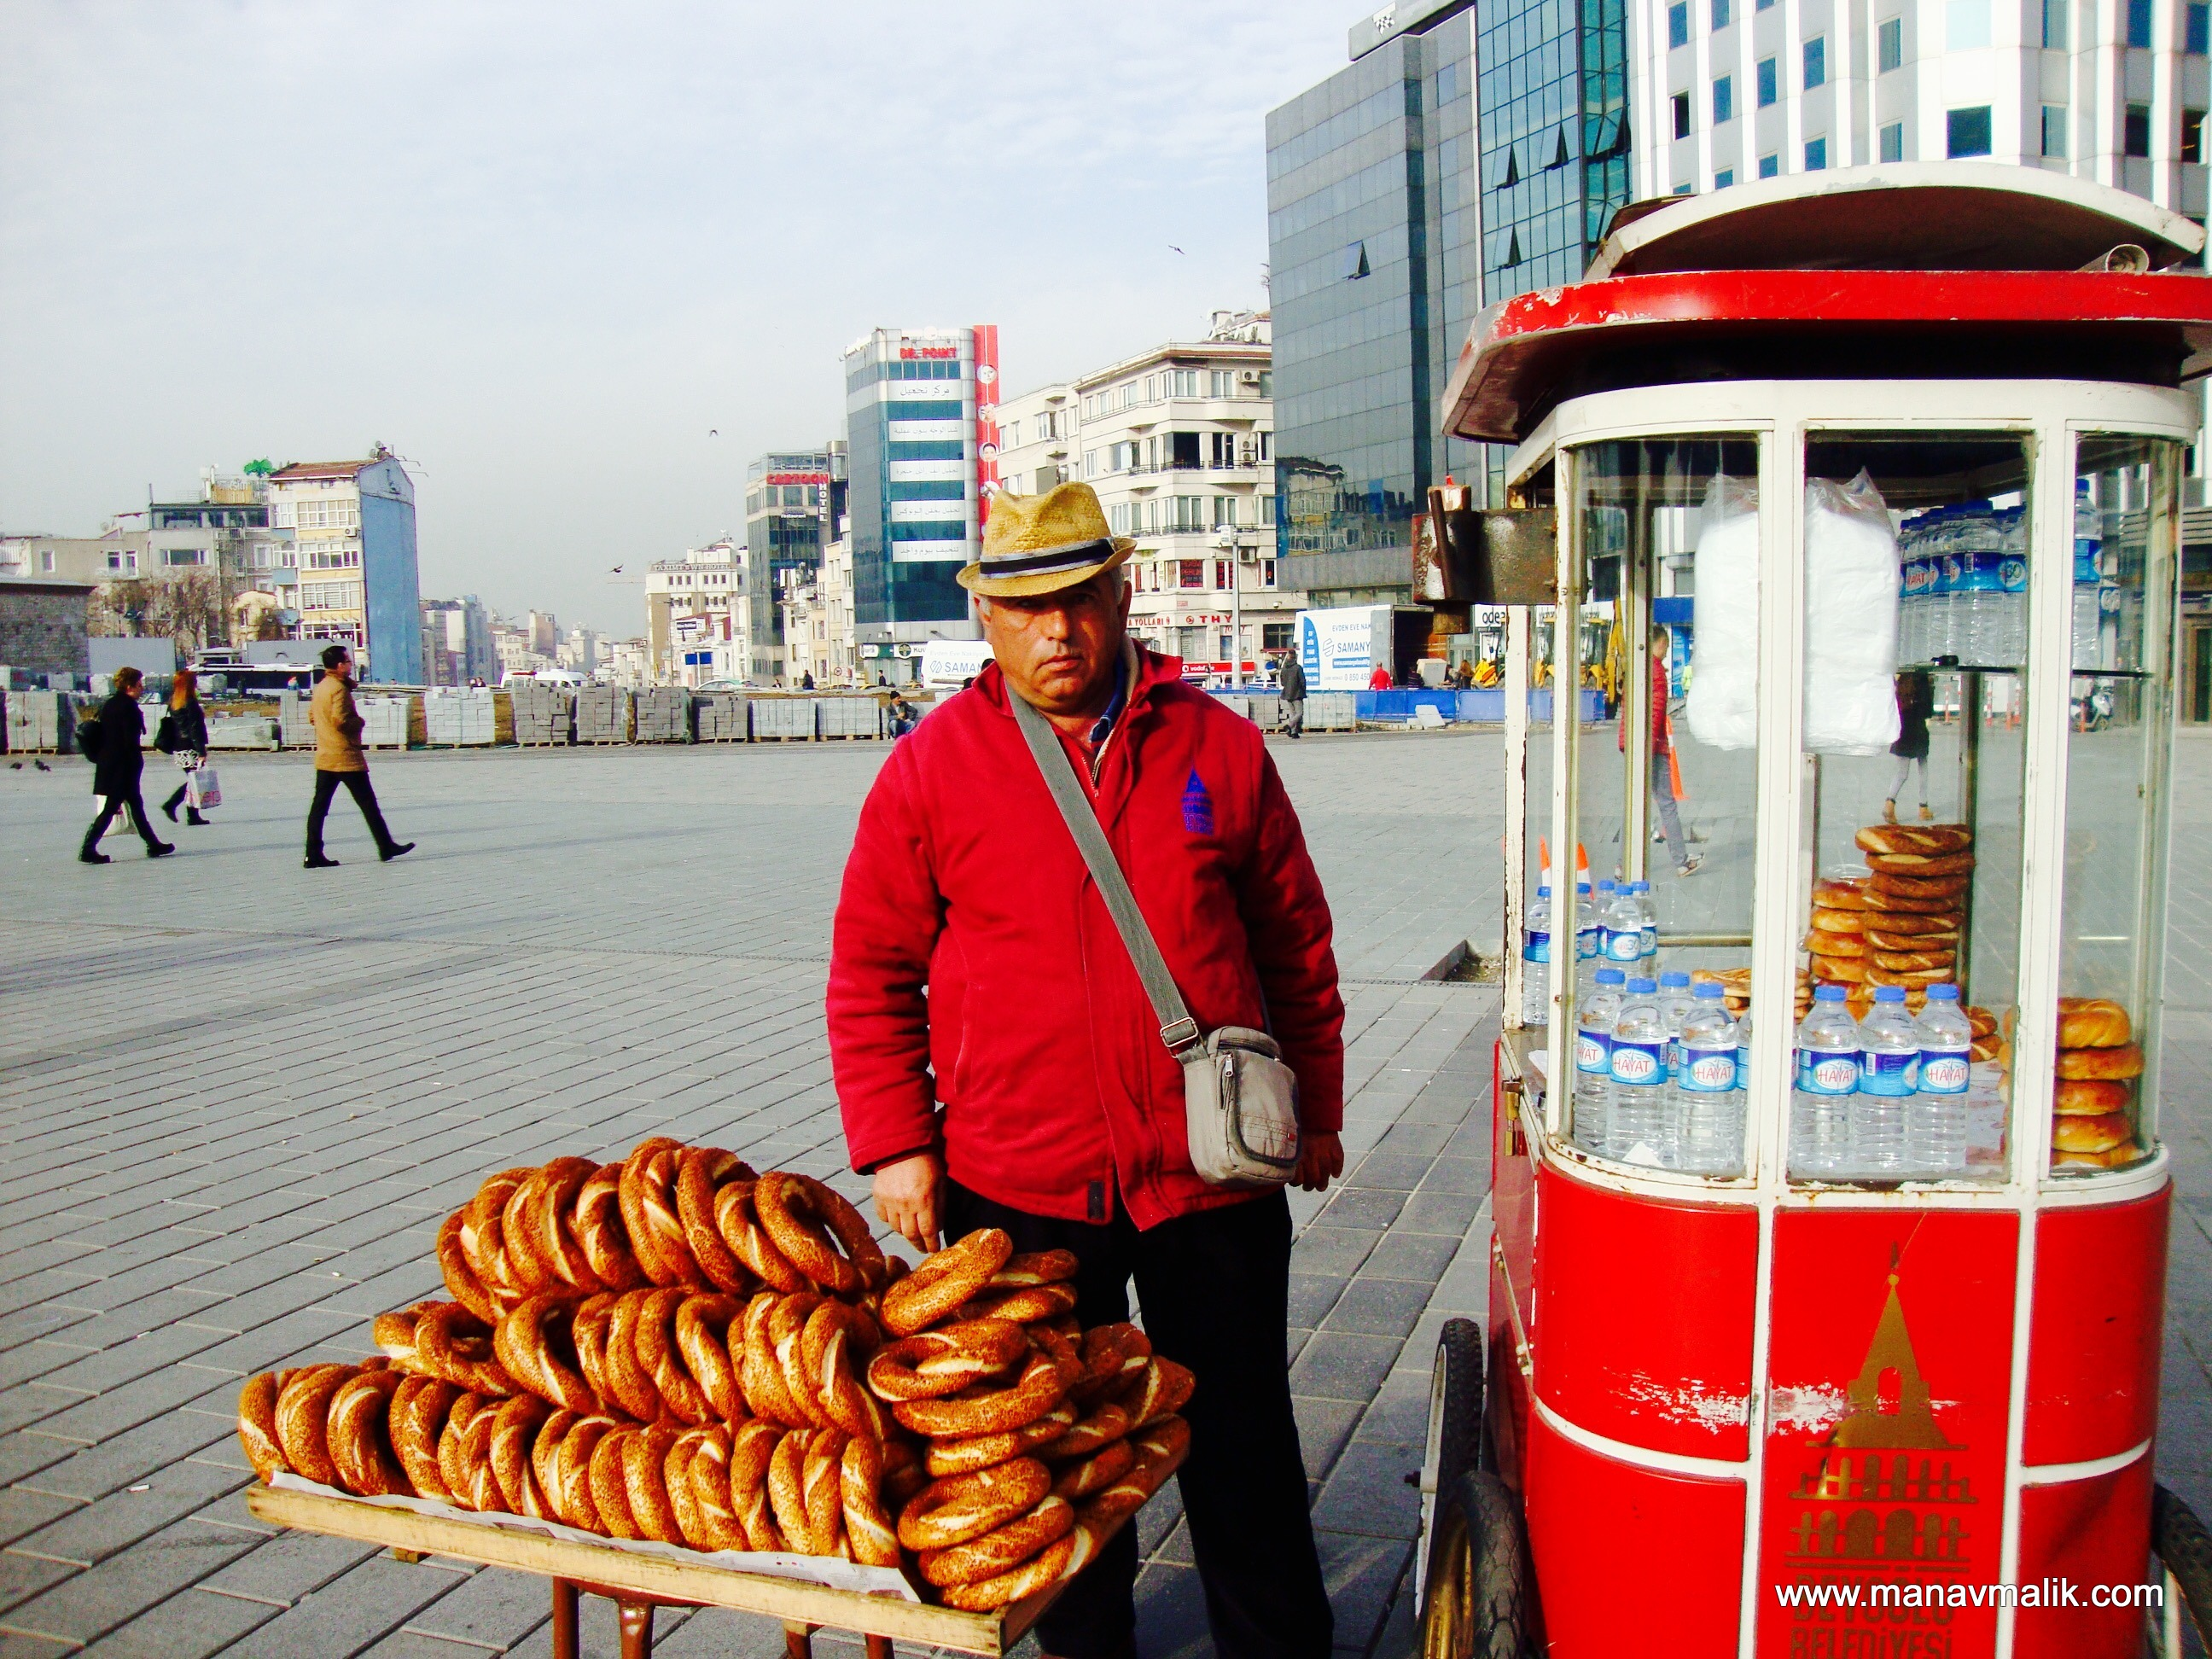 A vendor selling Simits or sesame breads